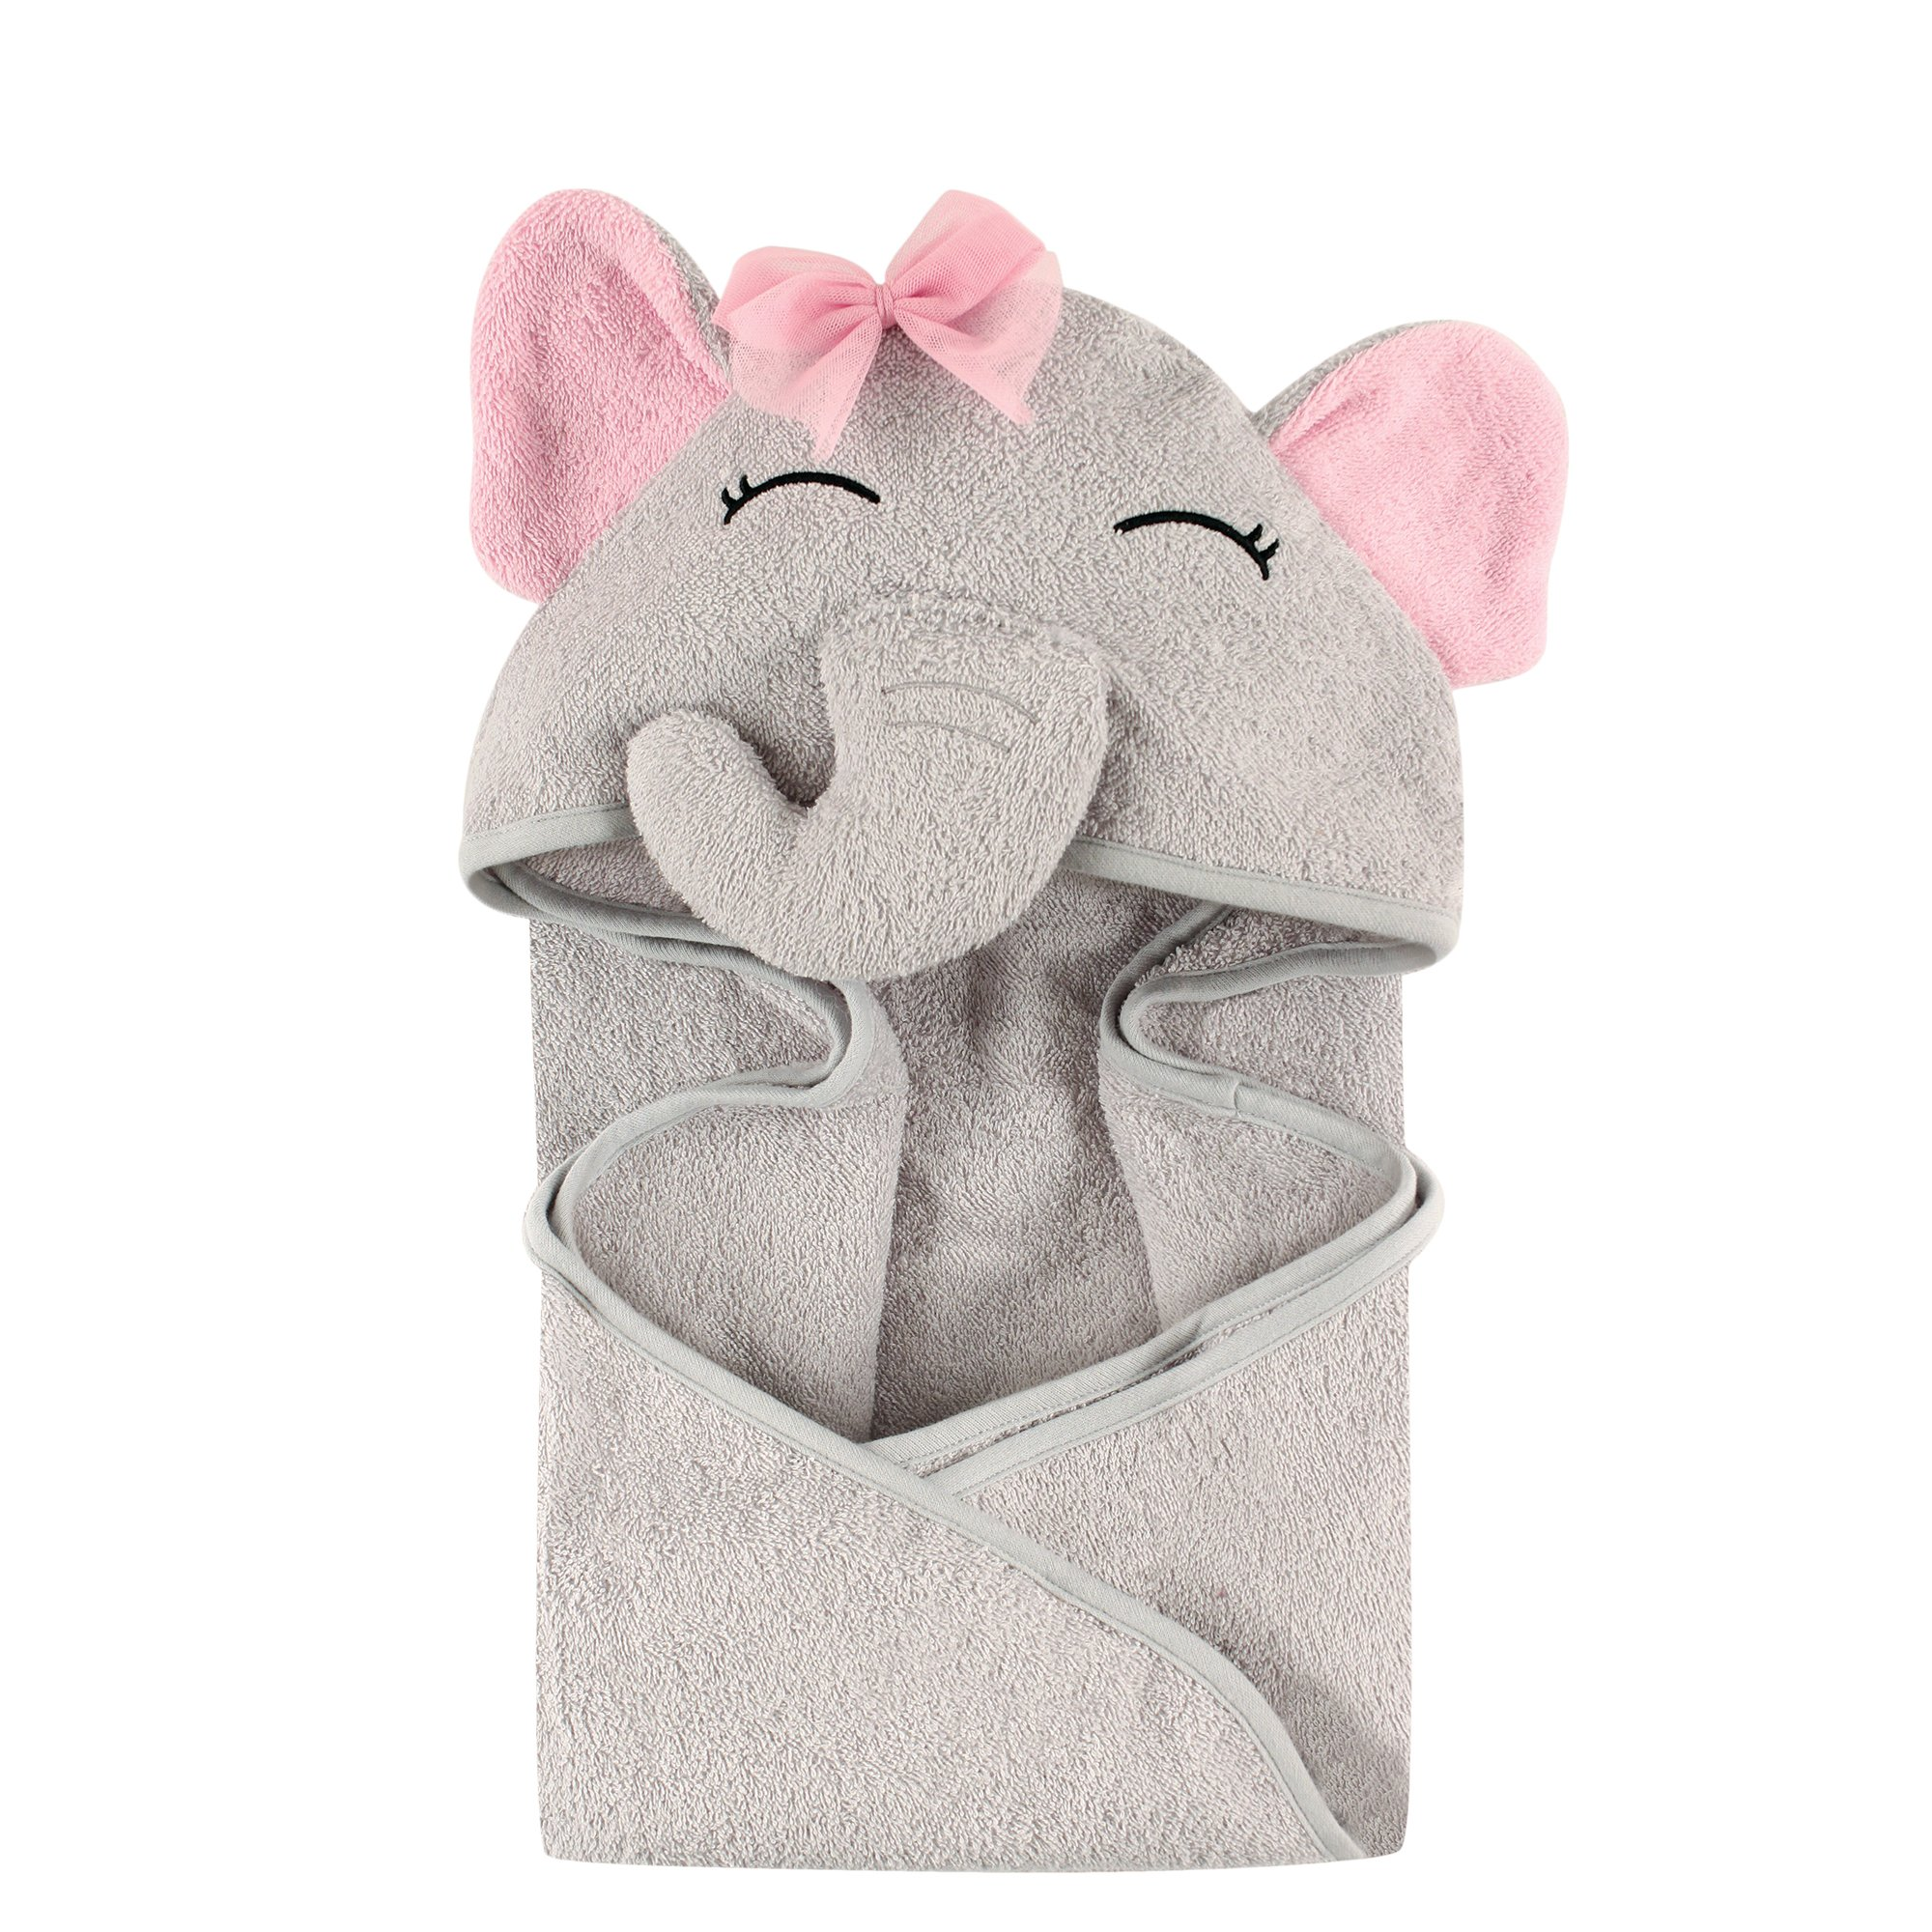 Hudson Baby Unisex Baby Animal Face Hooded Towel, Pretty Elephant 1-Pack, One Size by Hudson Baby